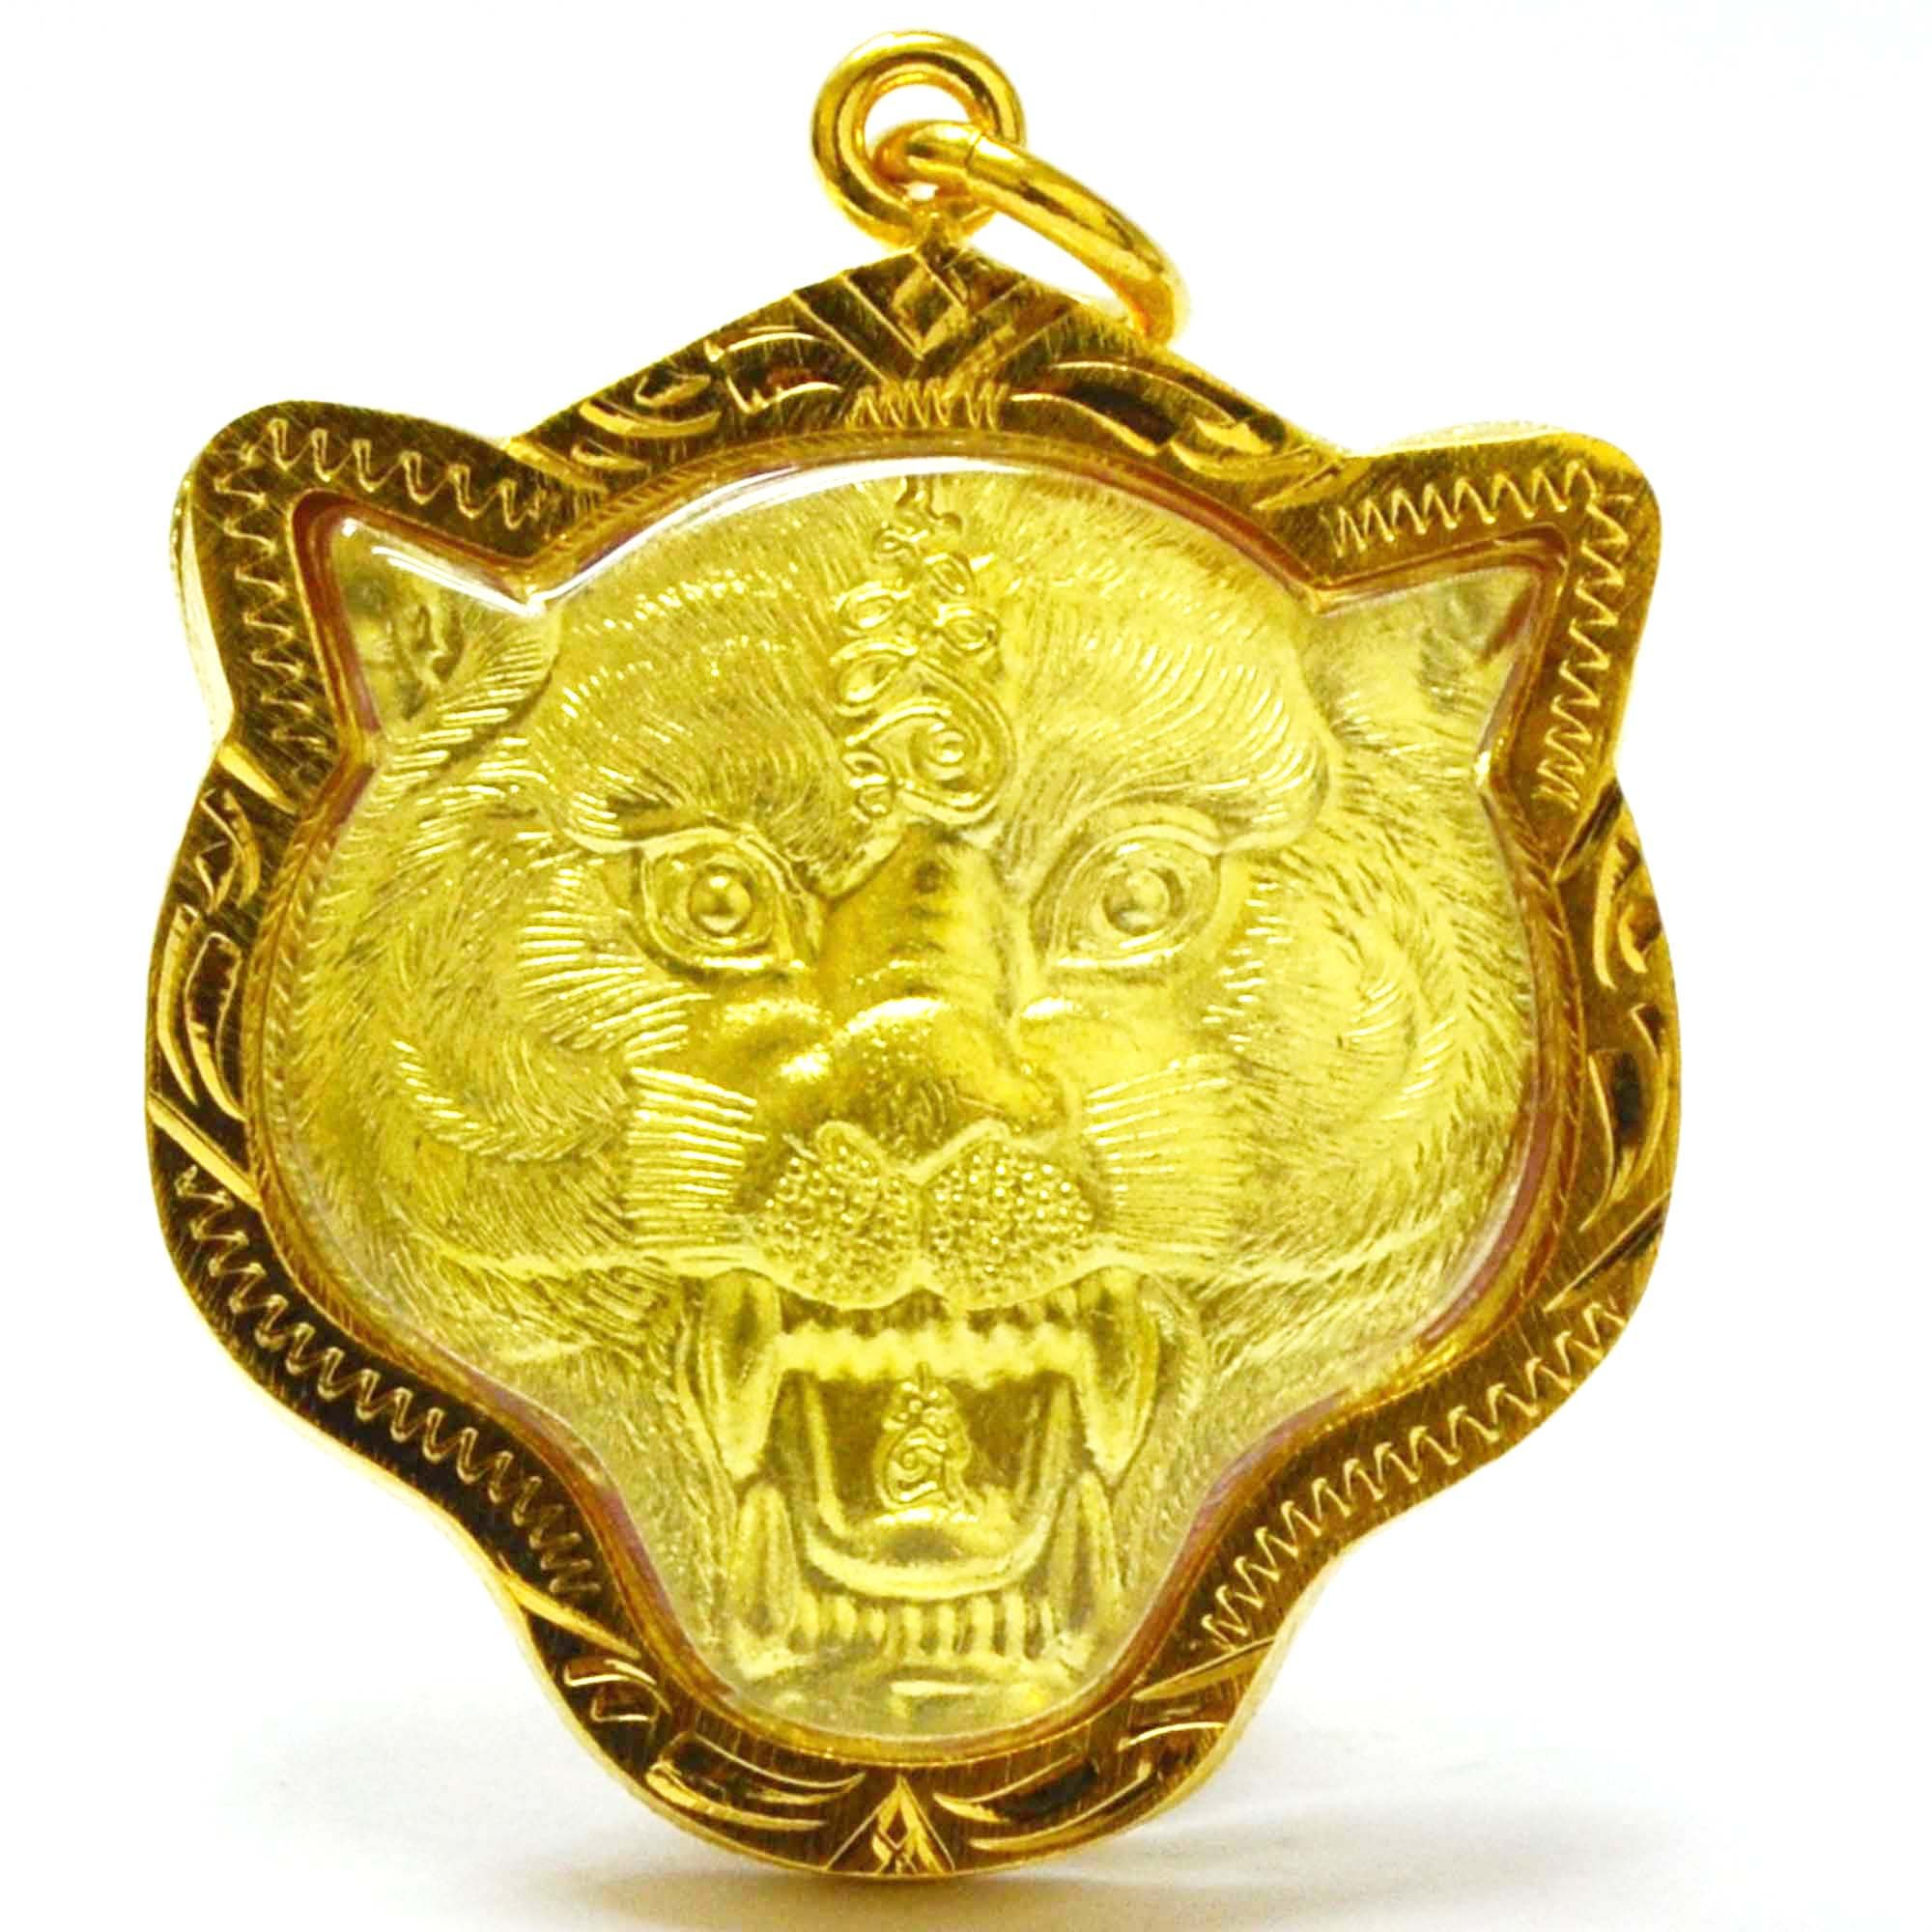 Thailand Tiger Amulets Fighter Tiger Pendants Lp Pern,Life Protection by Muaythai Amulets Jewelry